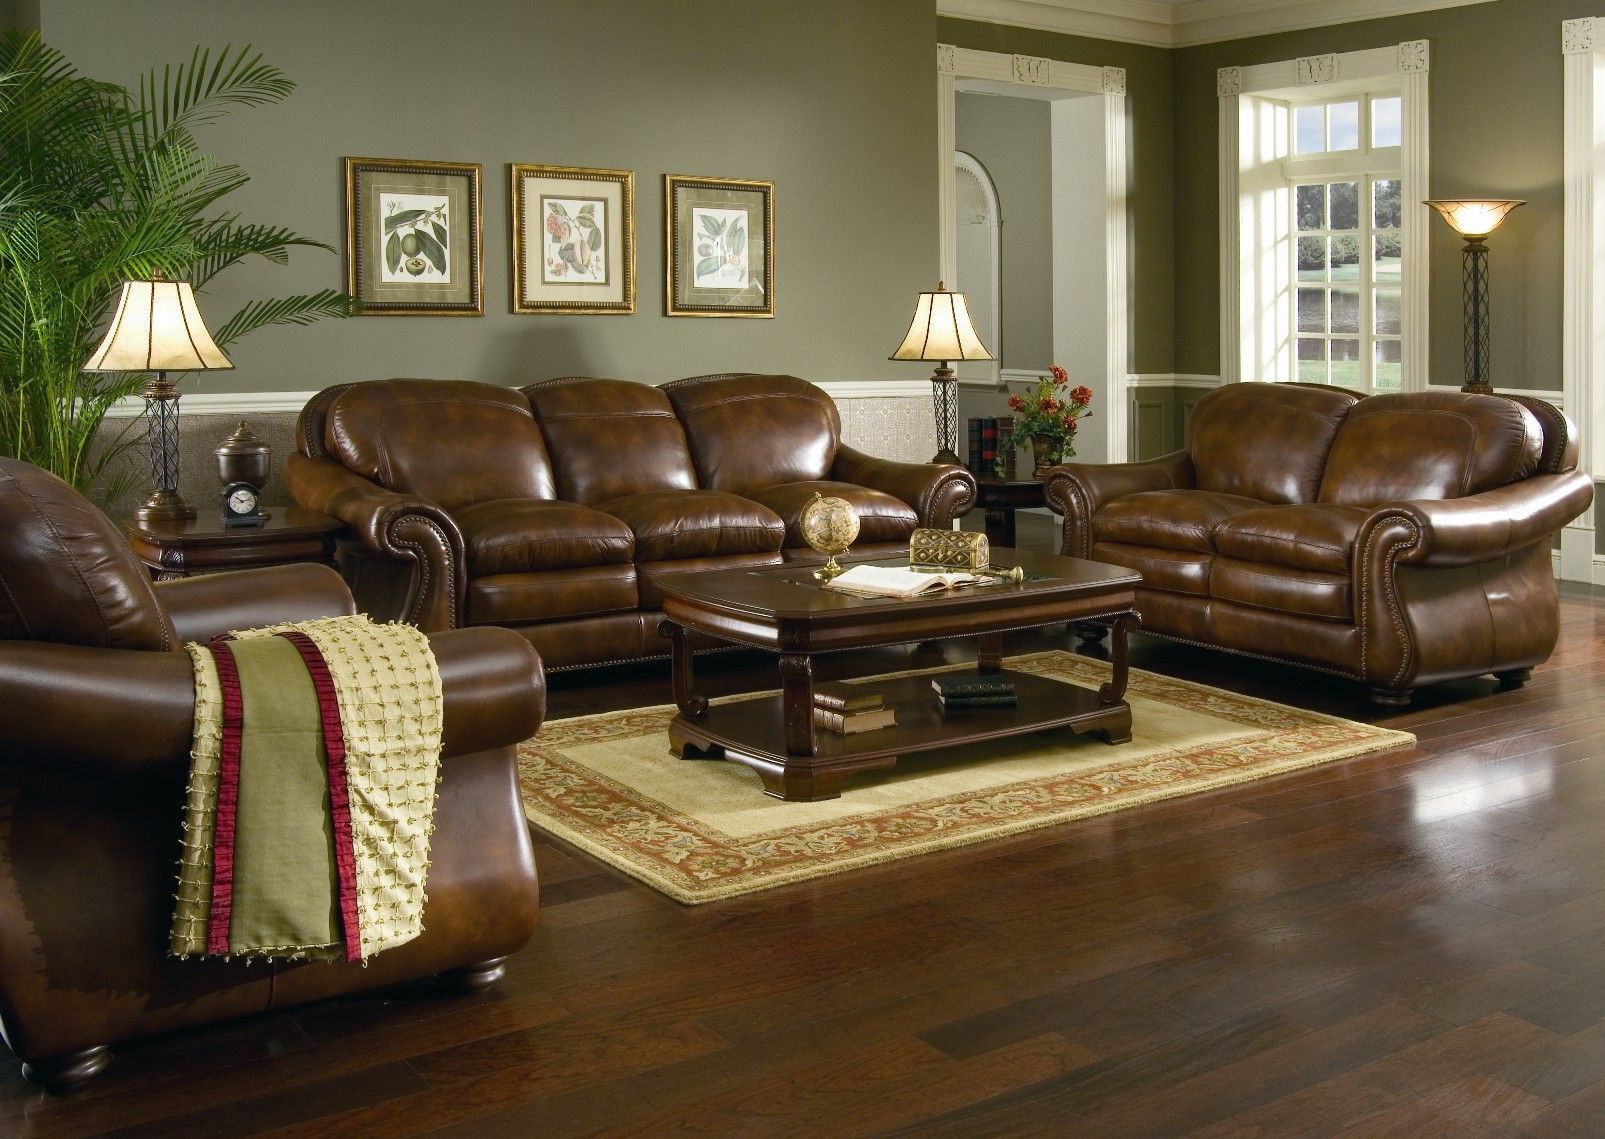 Brown leather sofa set for living room